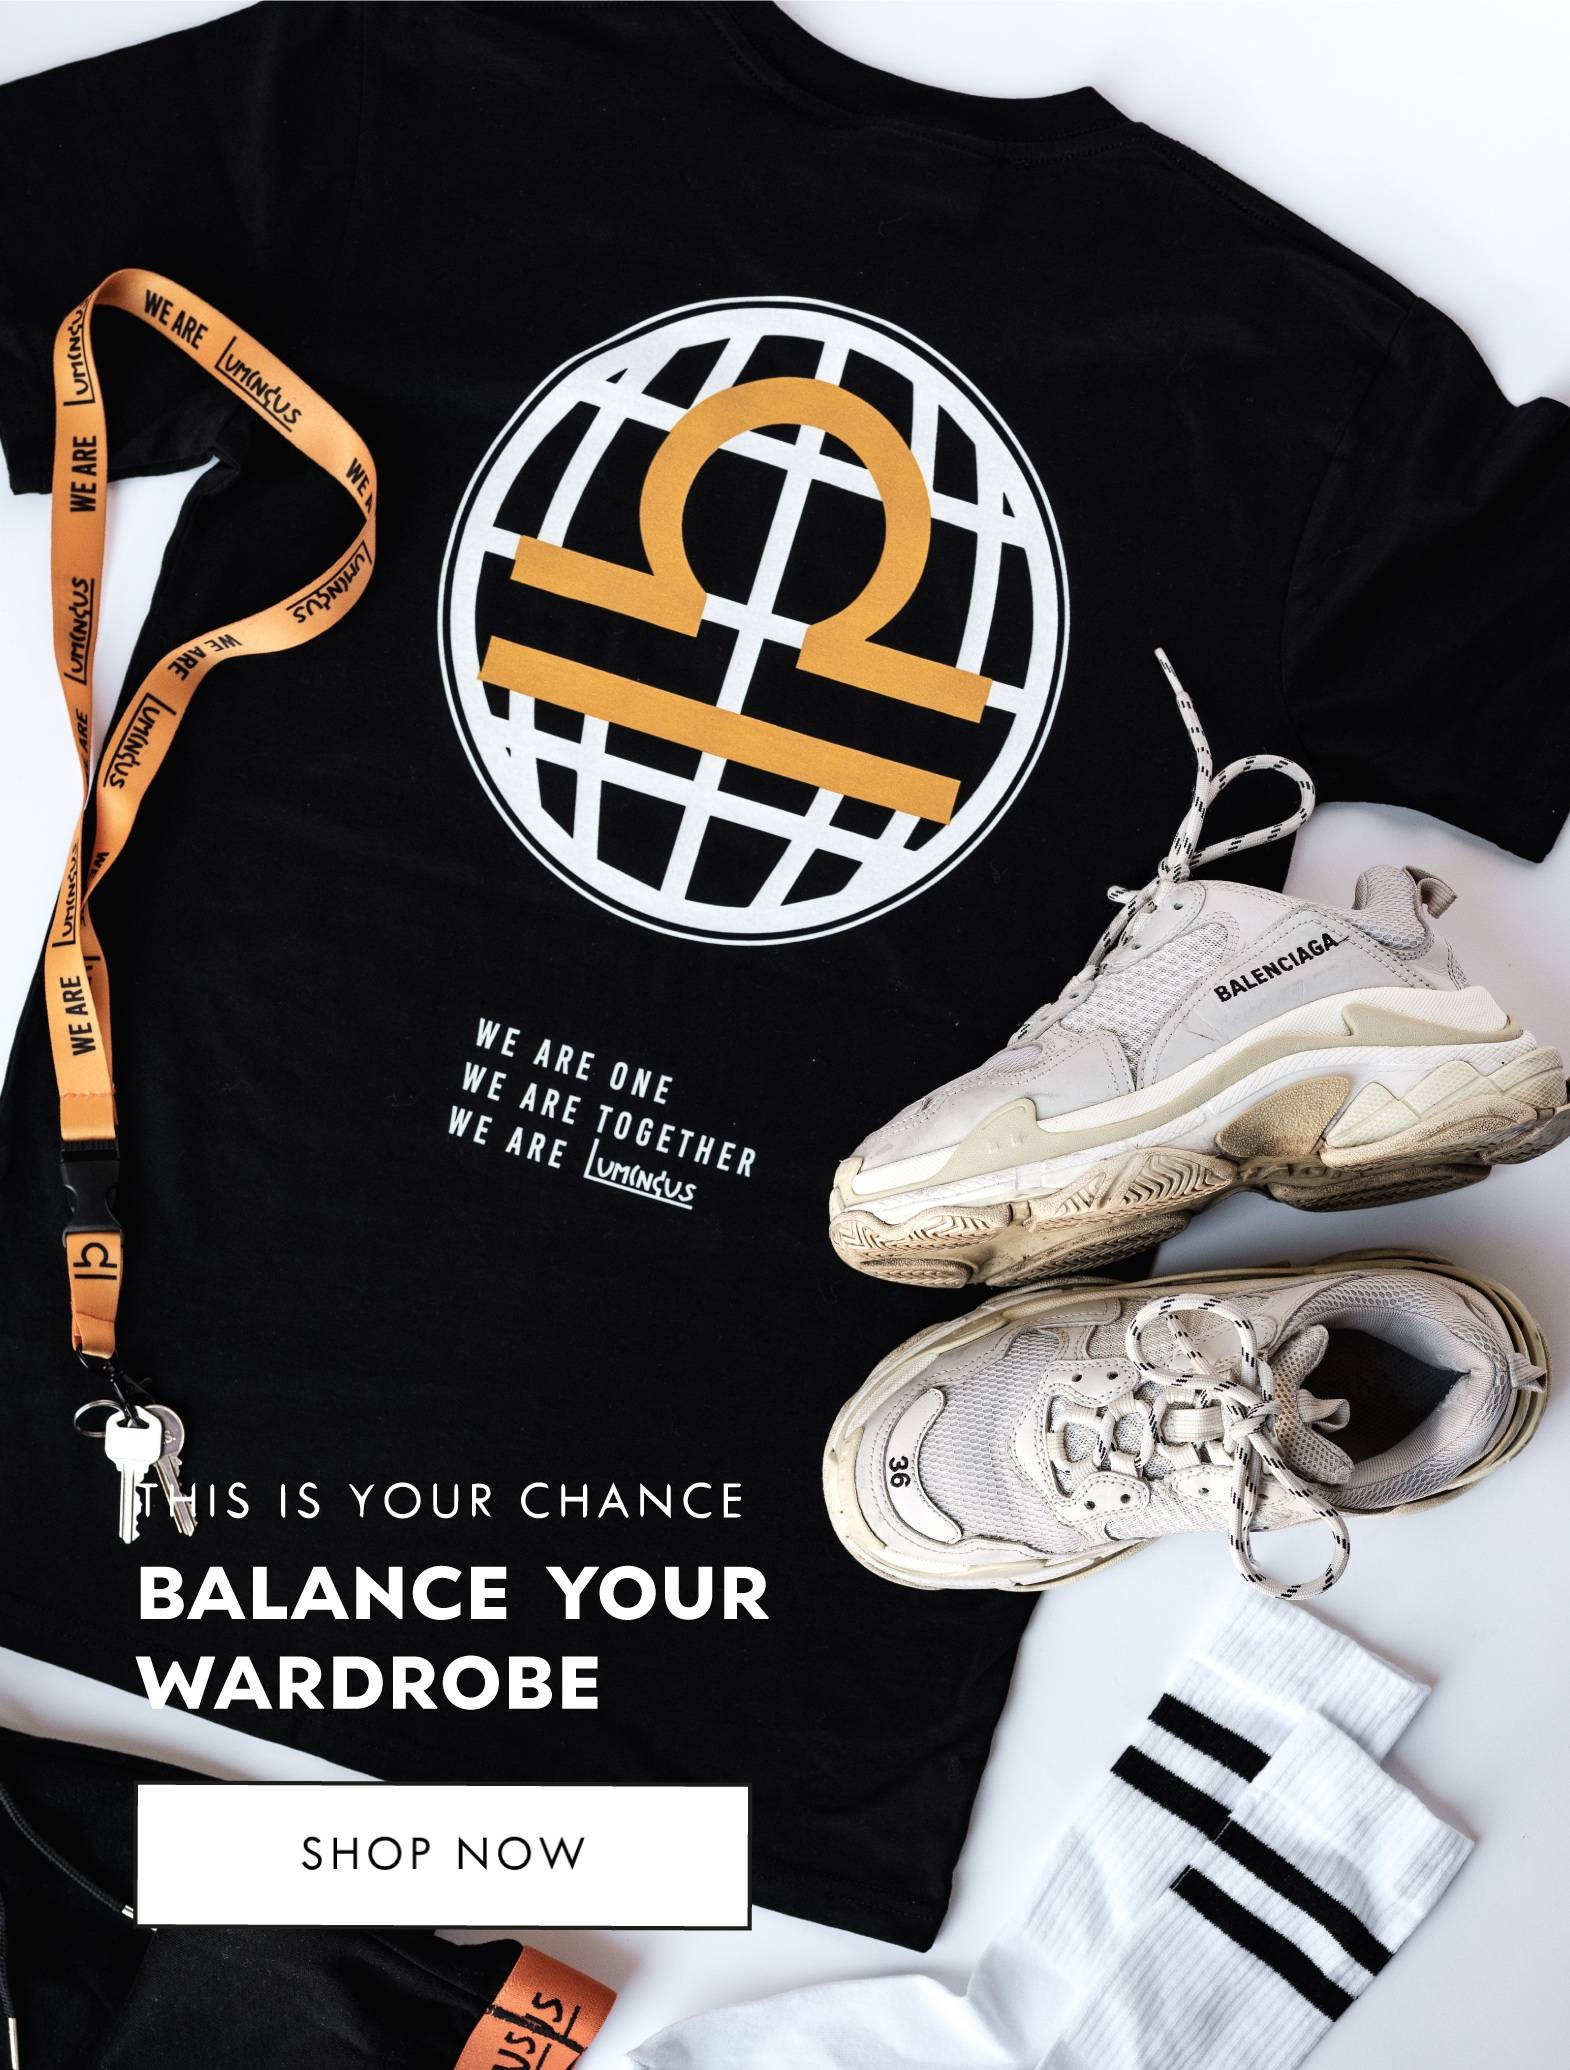 This Is Your Chance - Balance Your Wardrobe